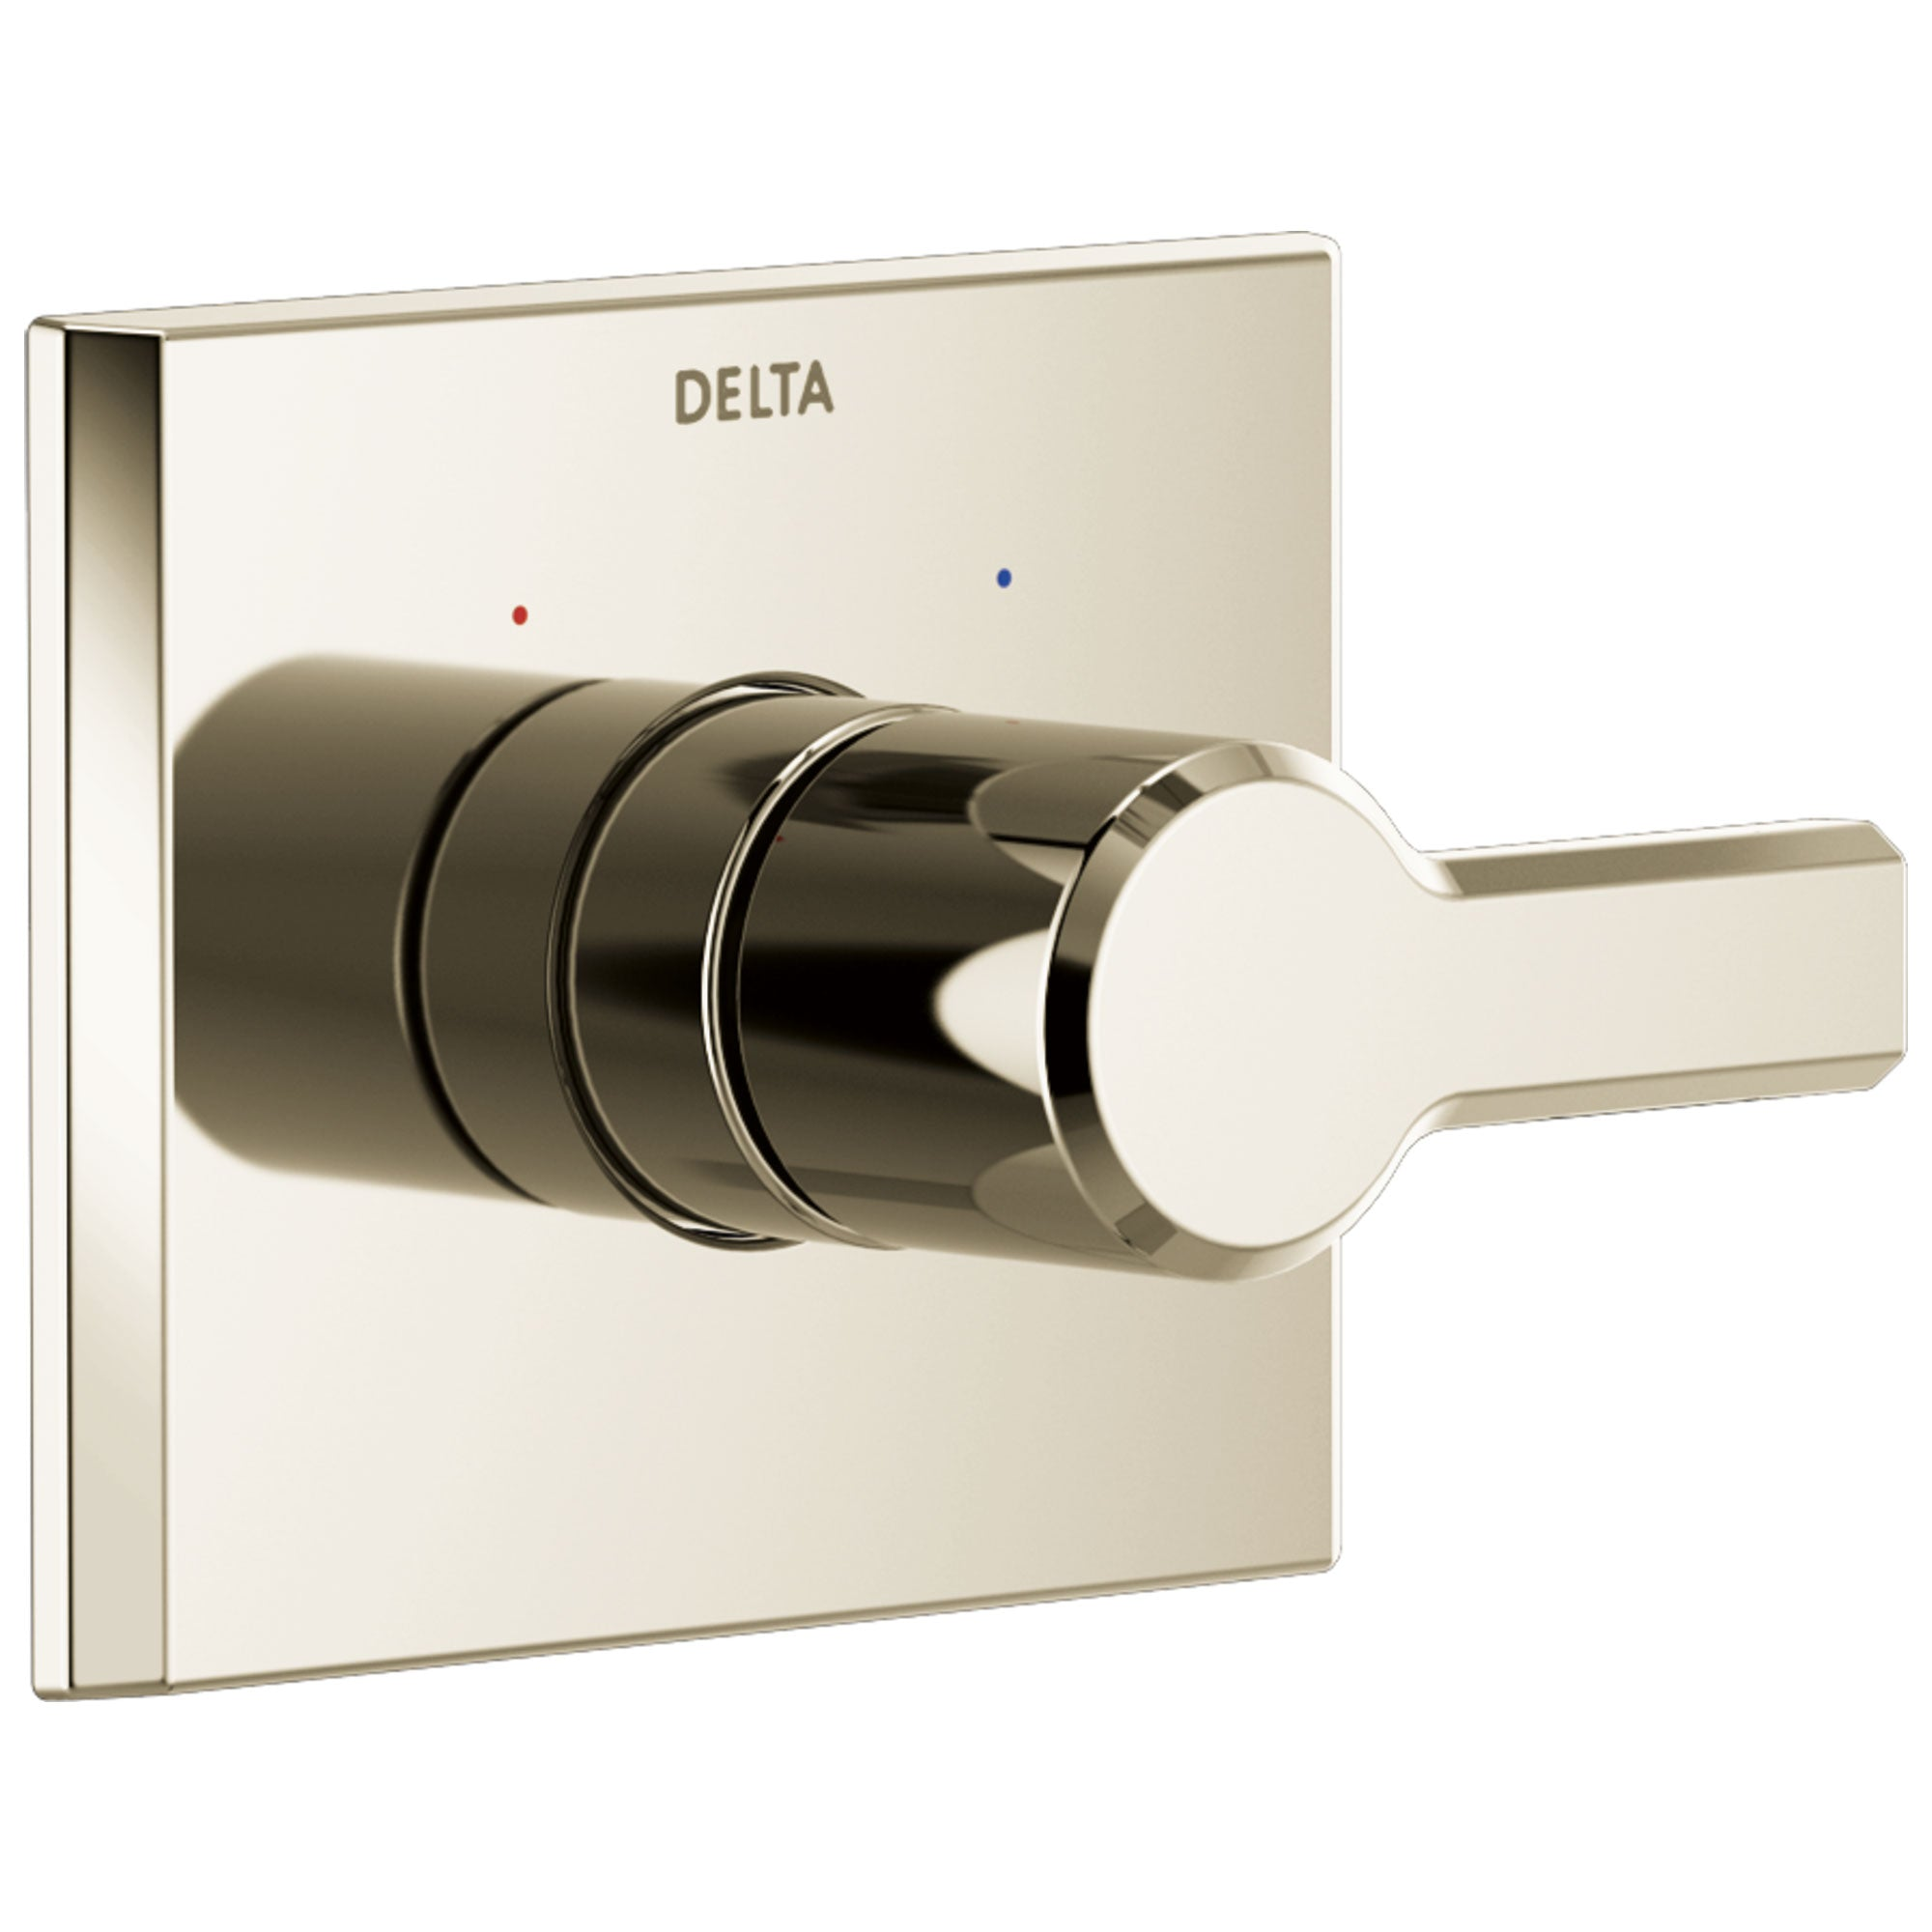 Delta Pivotal Polished Nickel Finish Monitor 14 Series Shower Faucet Control Only Trim Kit (Requires Valve) DT14099PN